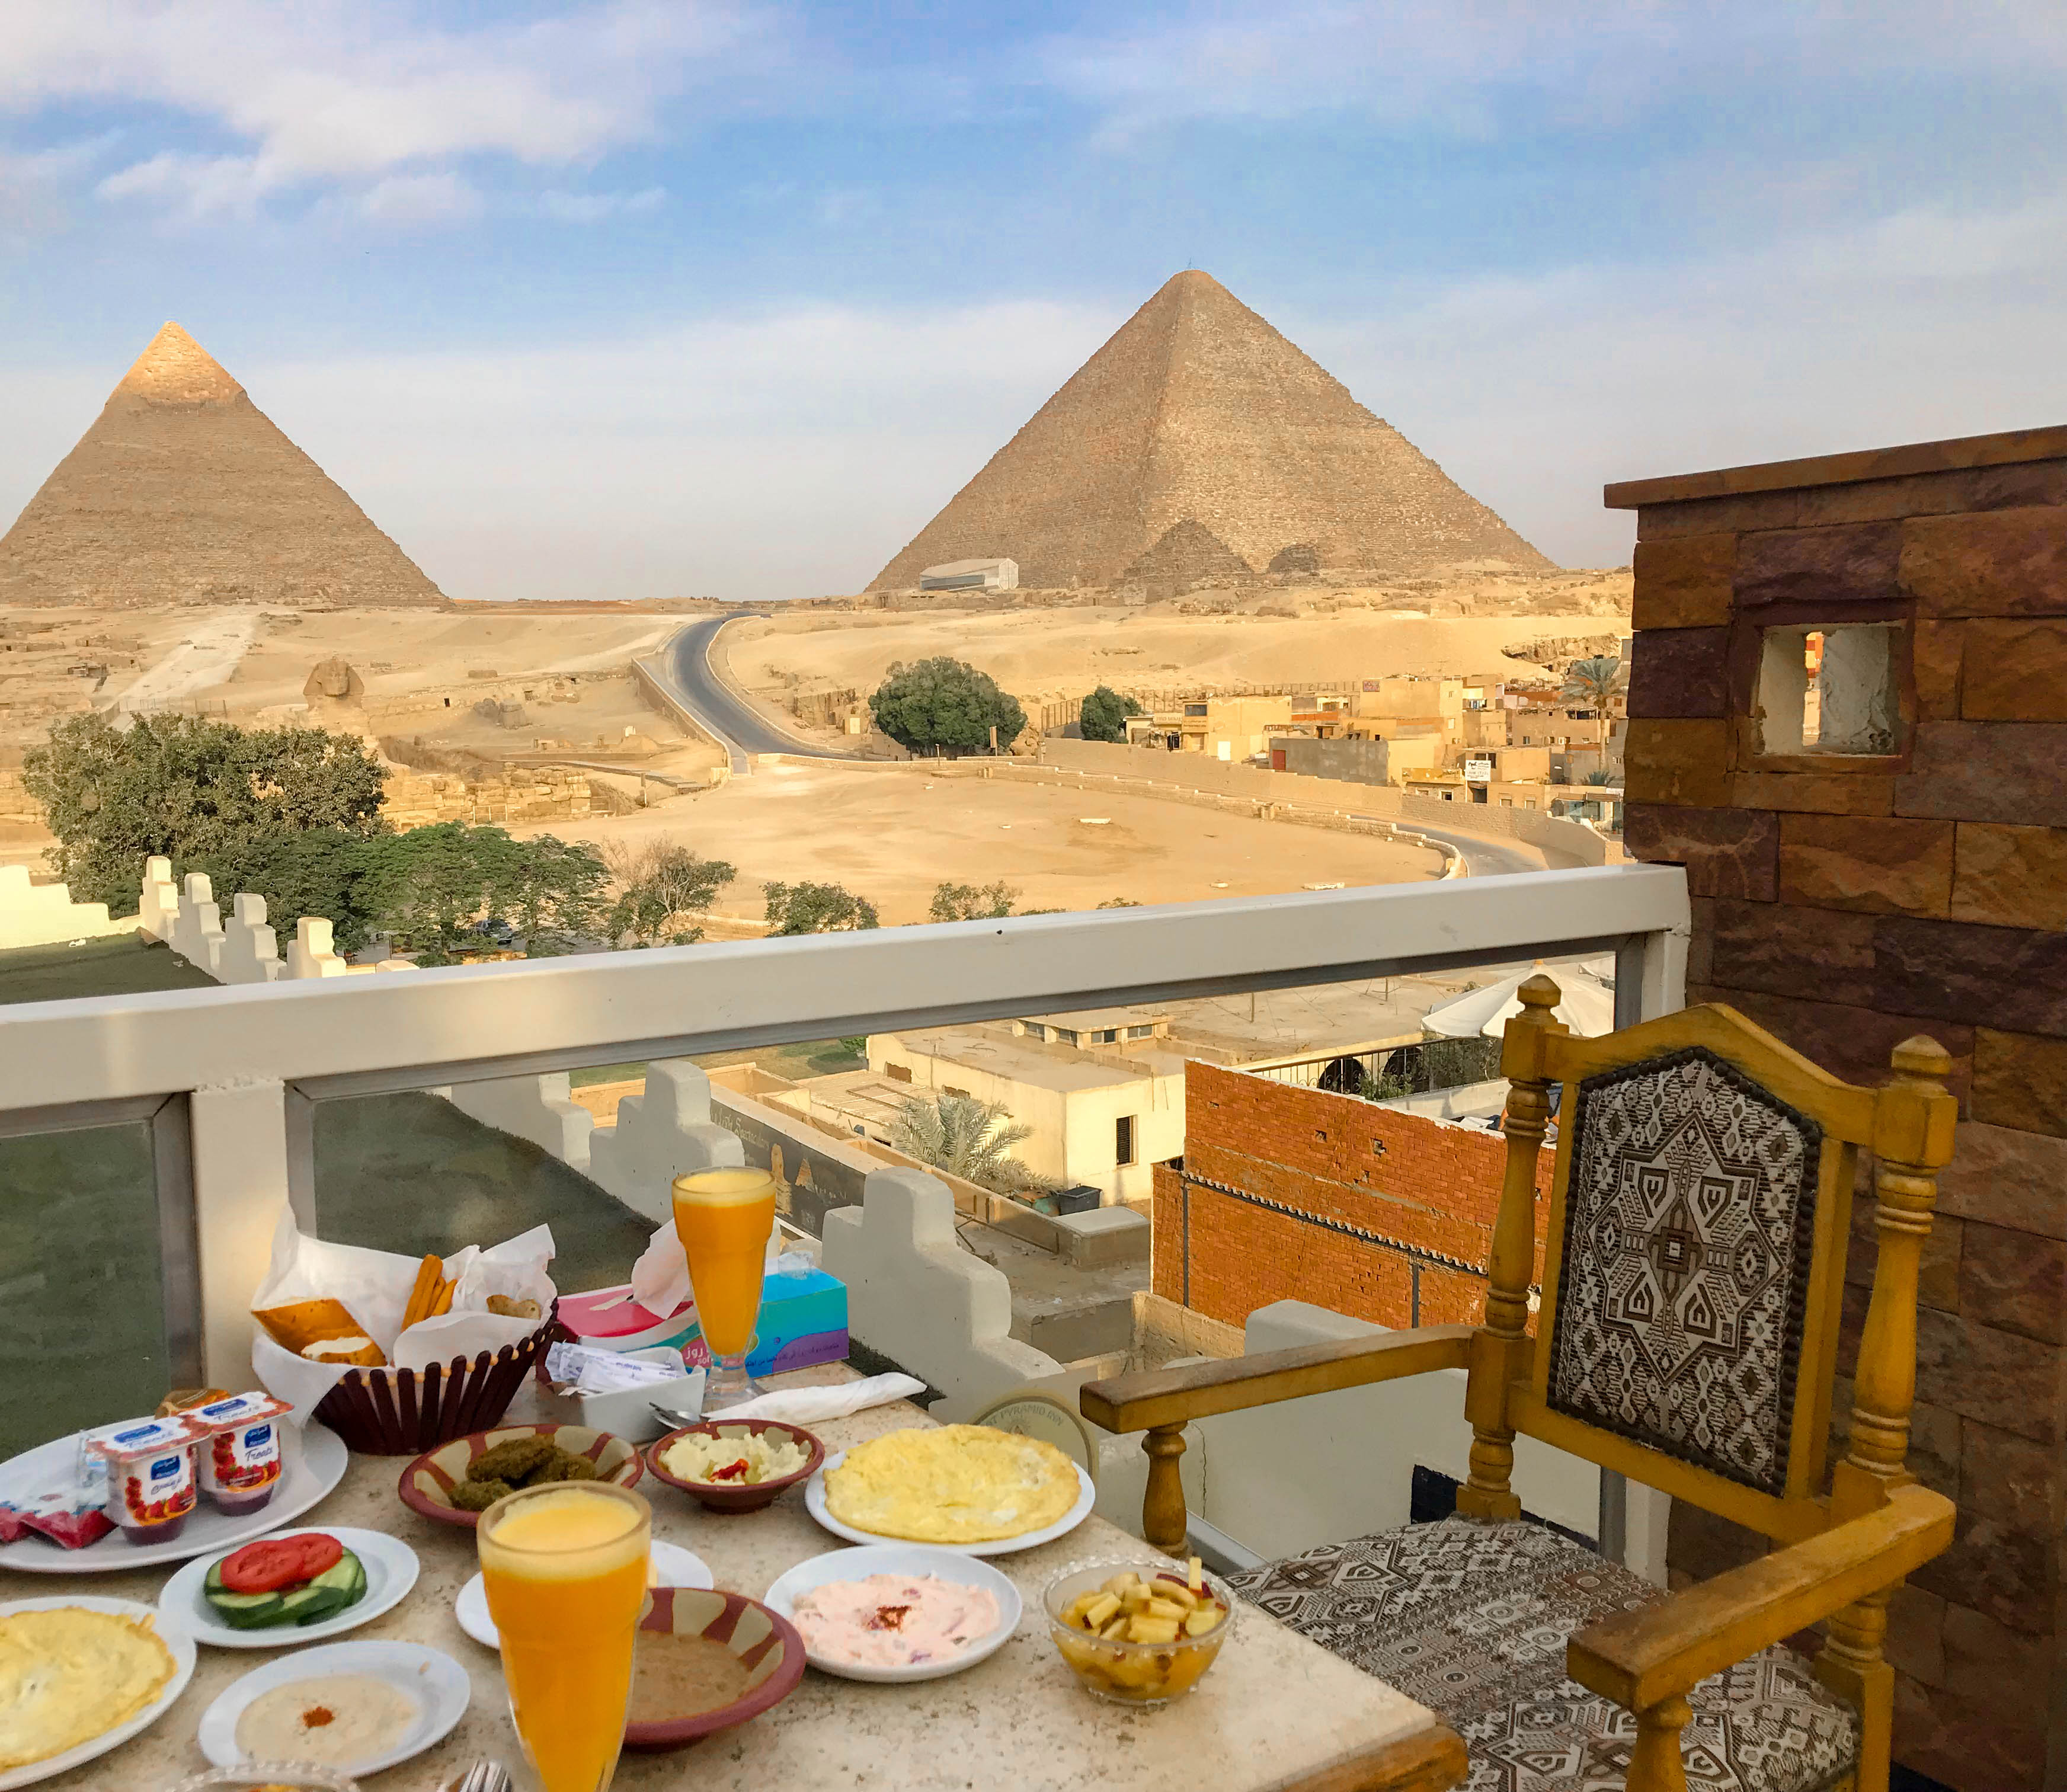 Breakfast Overlooking The Pyramids, Cairo, Egypt